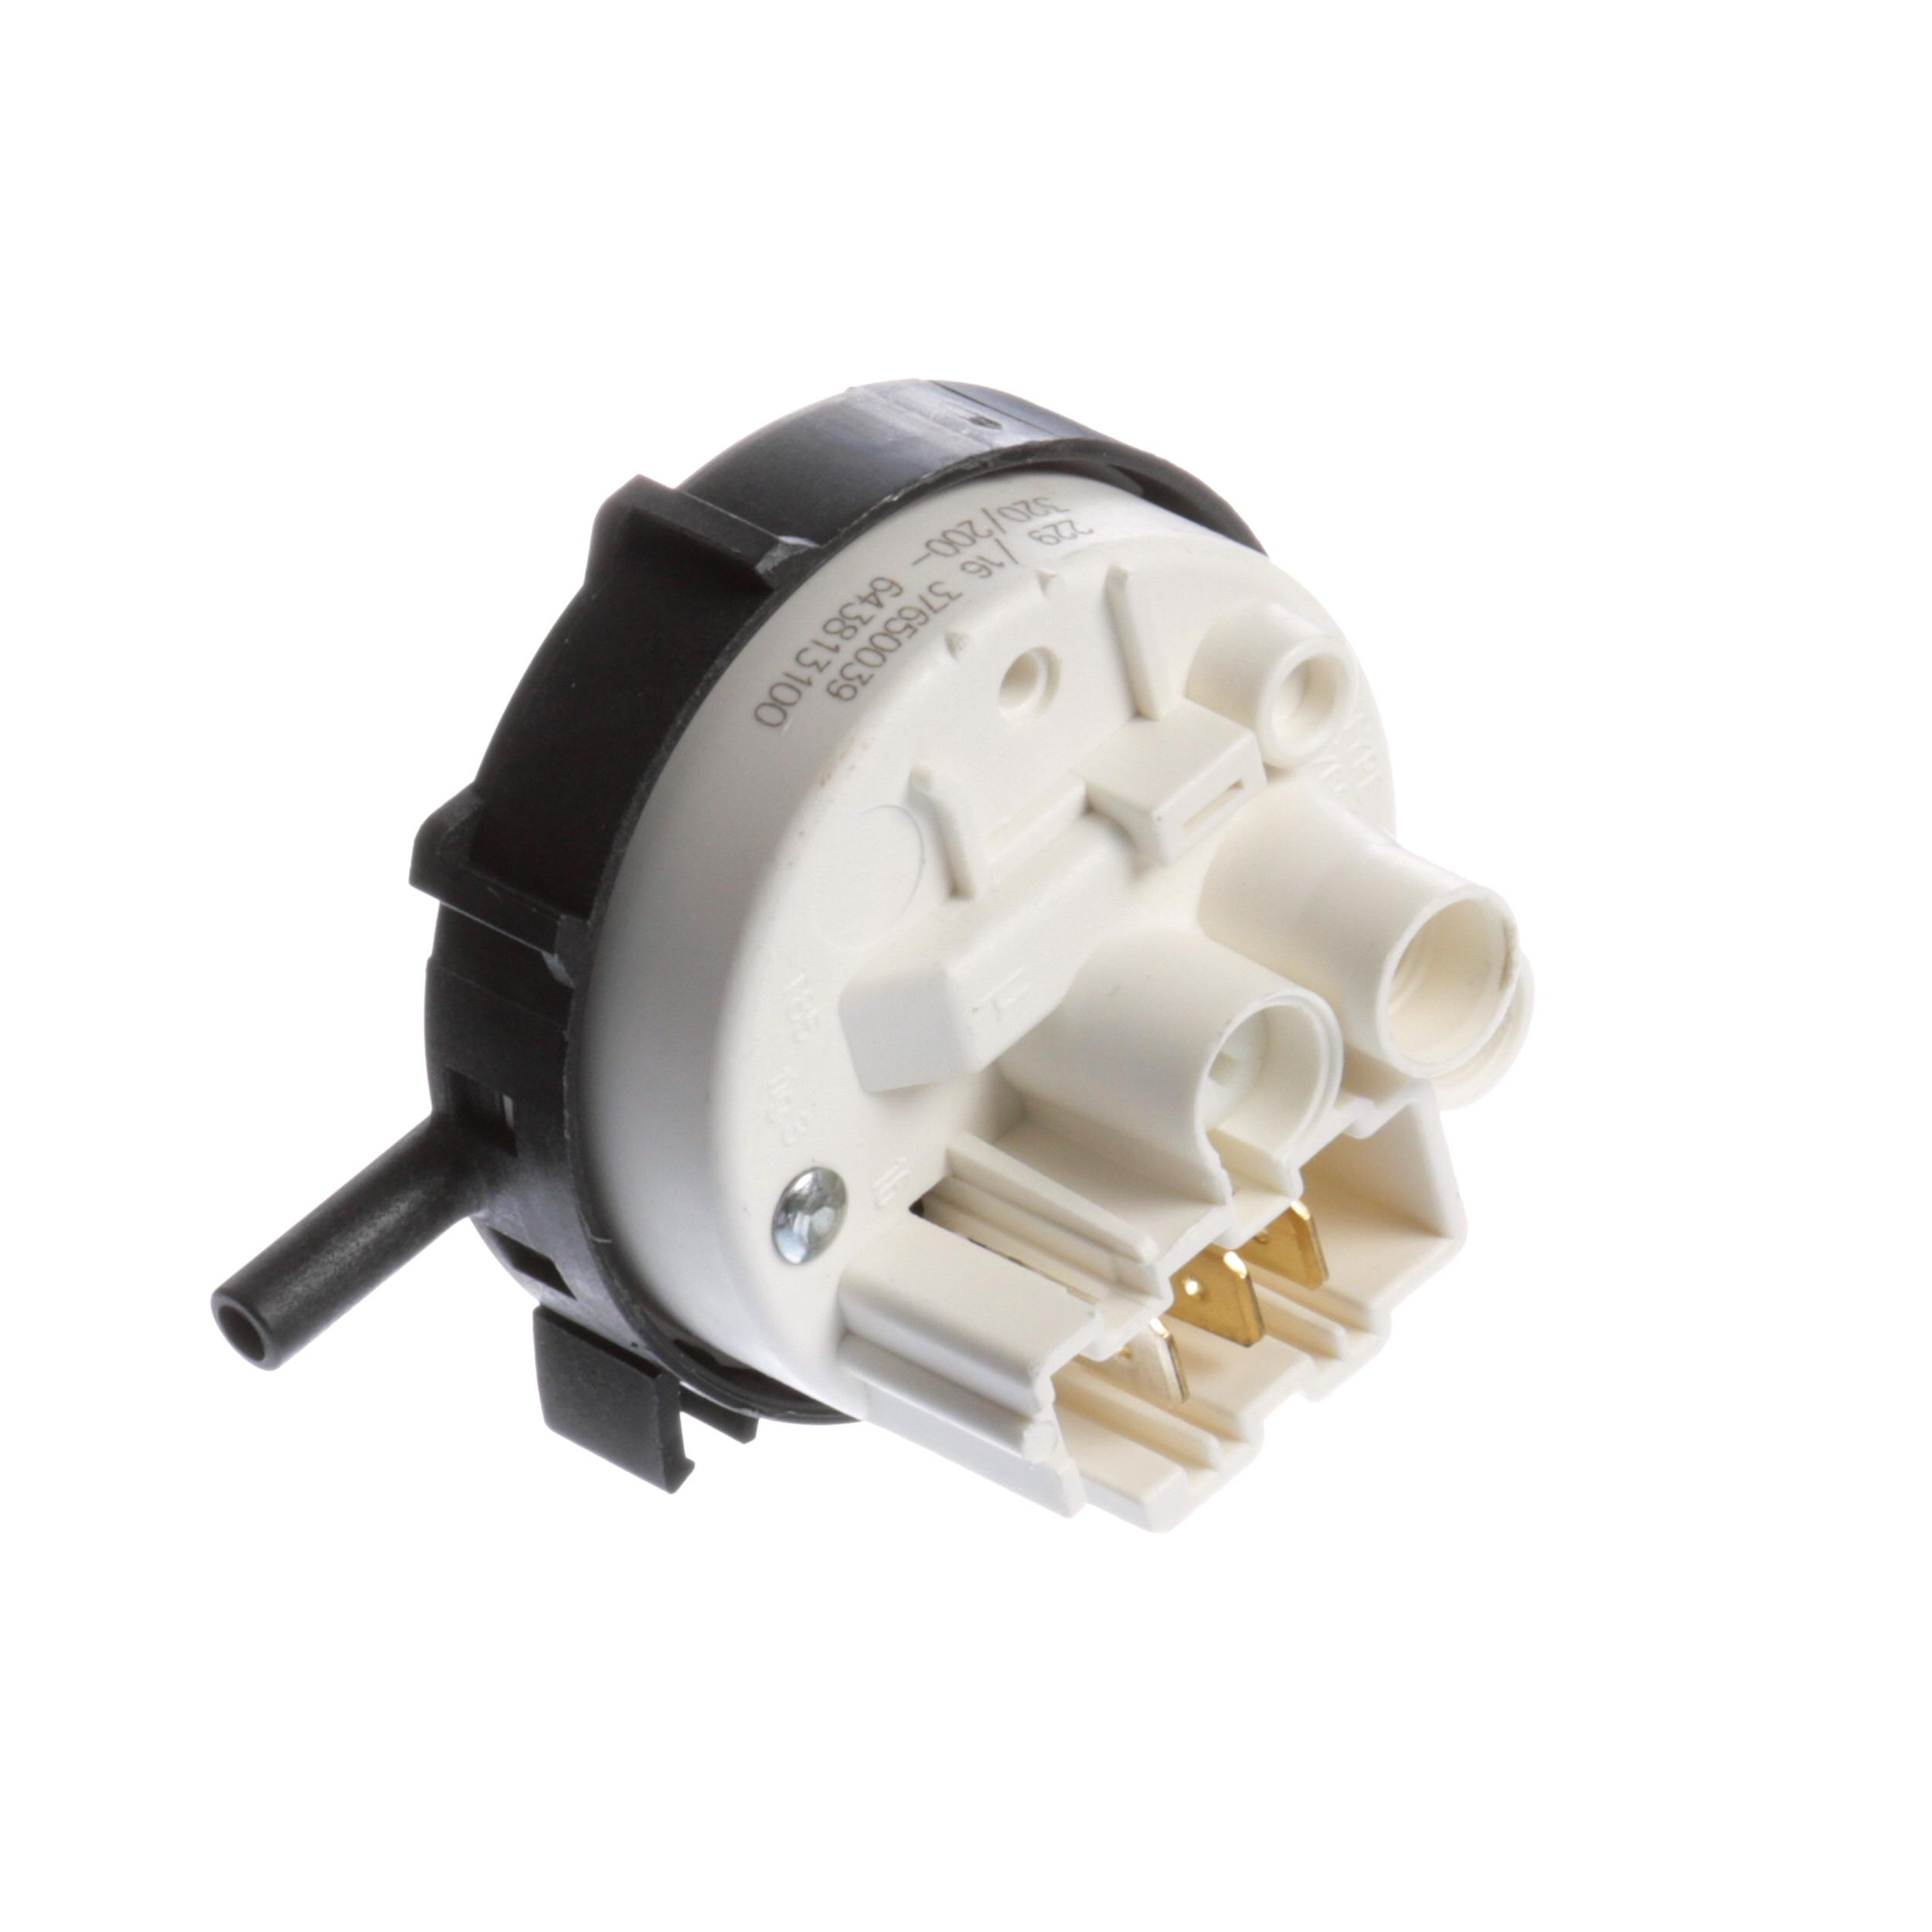 ELECTROLUX PRESSURE SWITCH